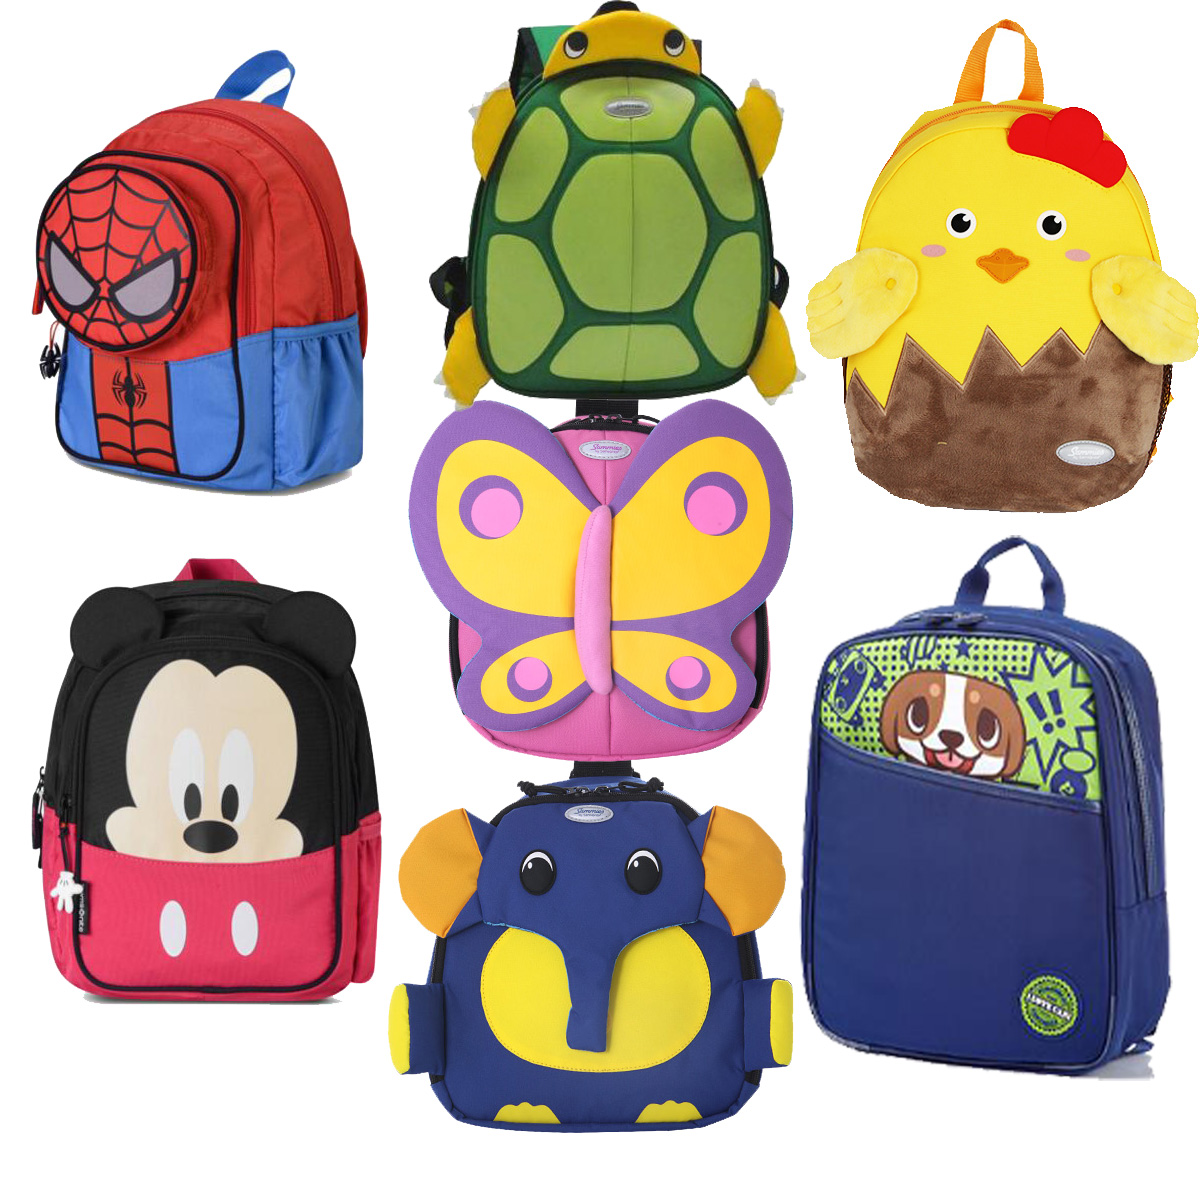 Counter authentic new beautiful childrens backpack u22 animal cartoon bear elephant butterfly 23C schoolbag